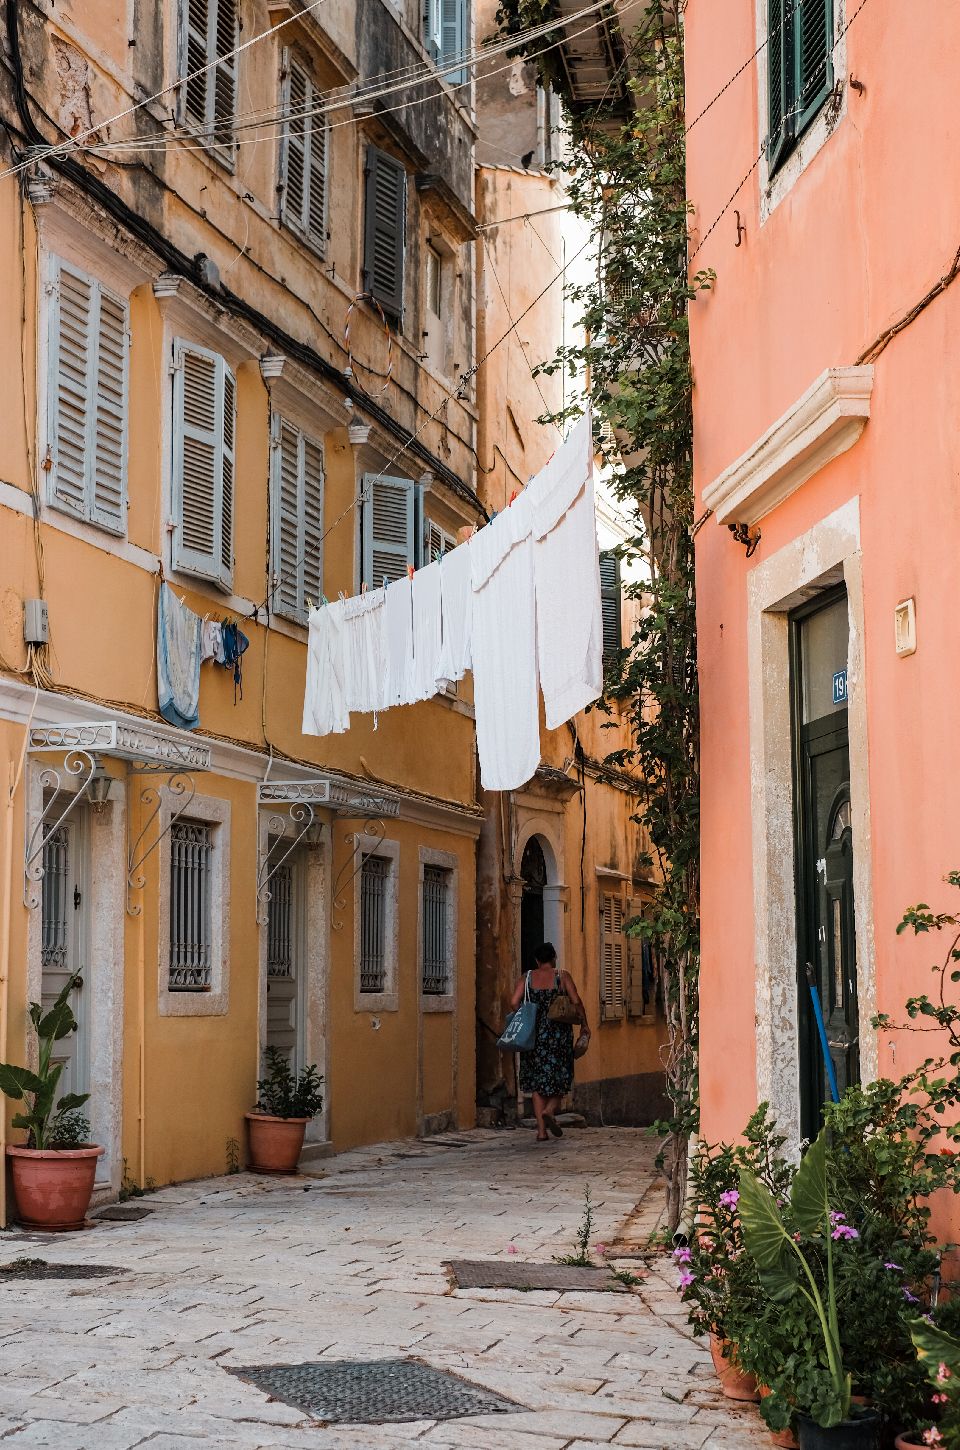 Woman walking through an Alley under White hanging clothes